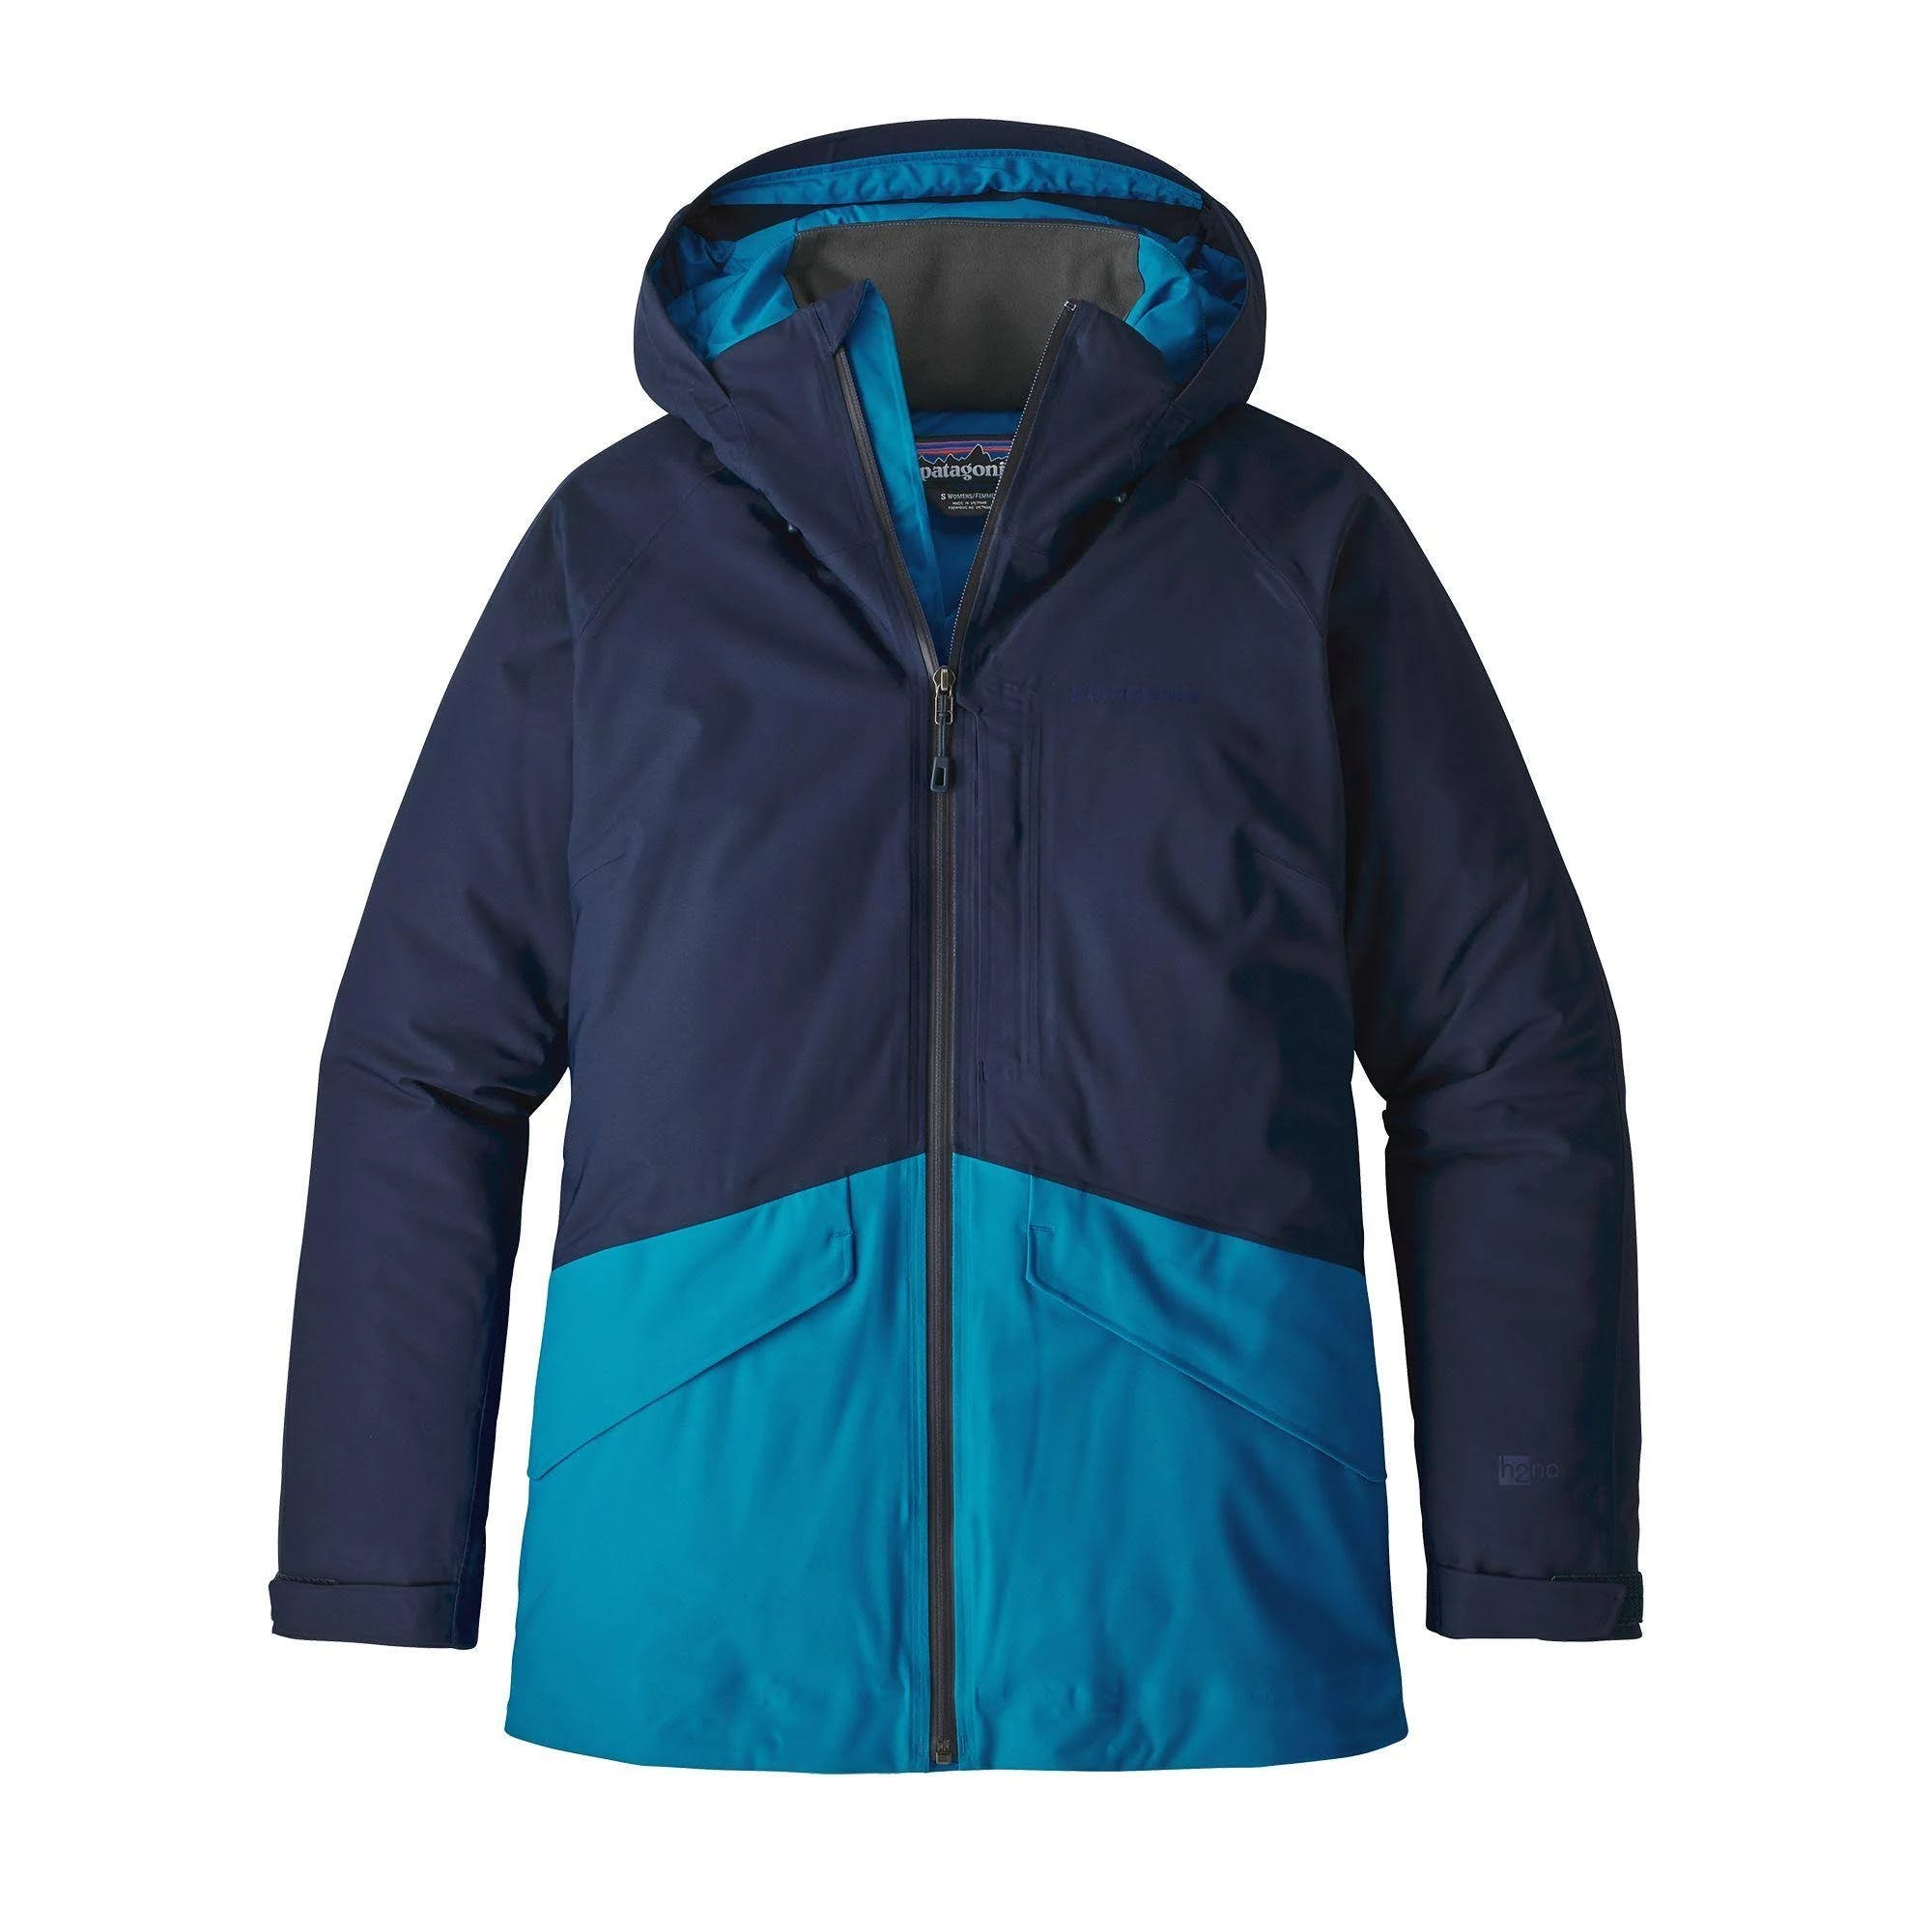 Patagonia Women's Insulated Snowbelle Jacket Classic Navy